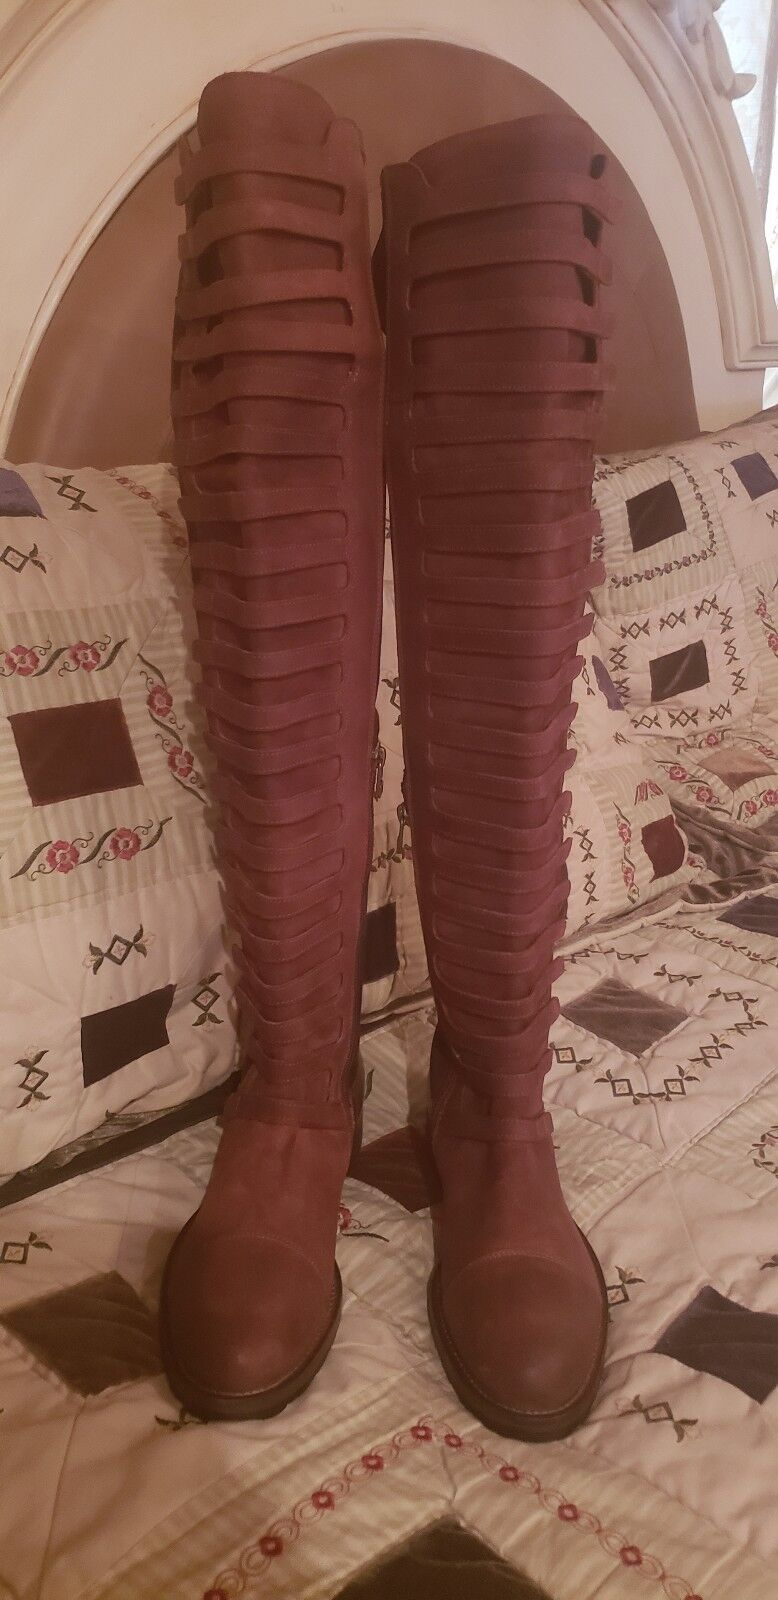 538 NEW FREE PEOPLE WOMEN'S BLACK FOREST OTK in Chocolate Euro 38